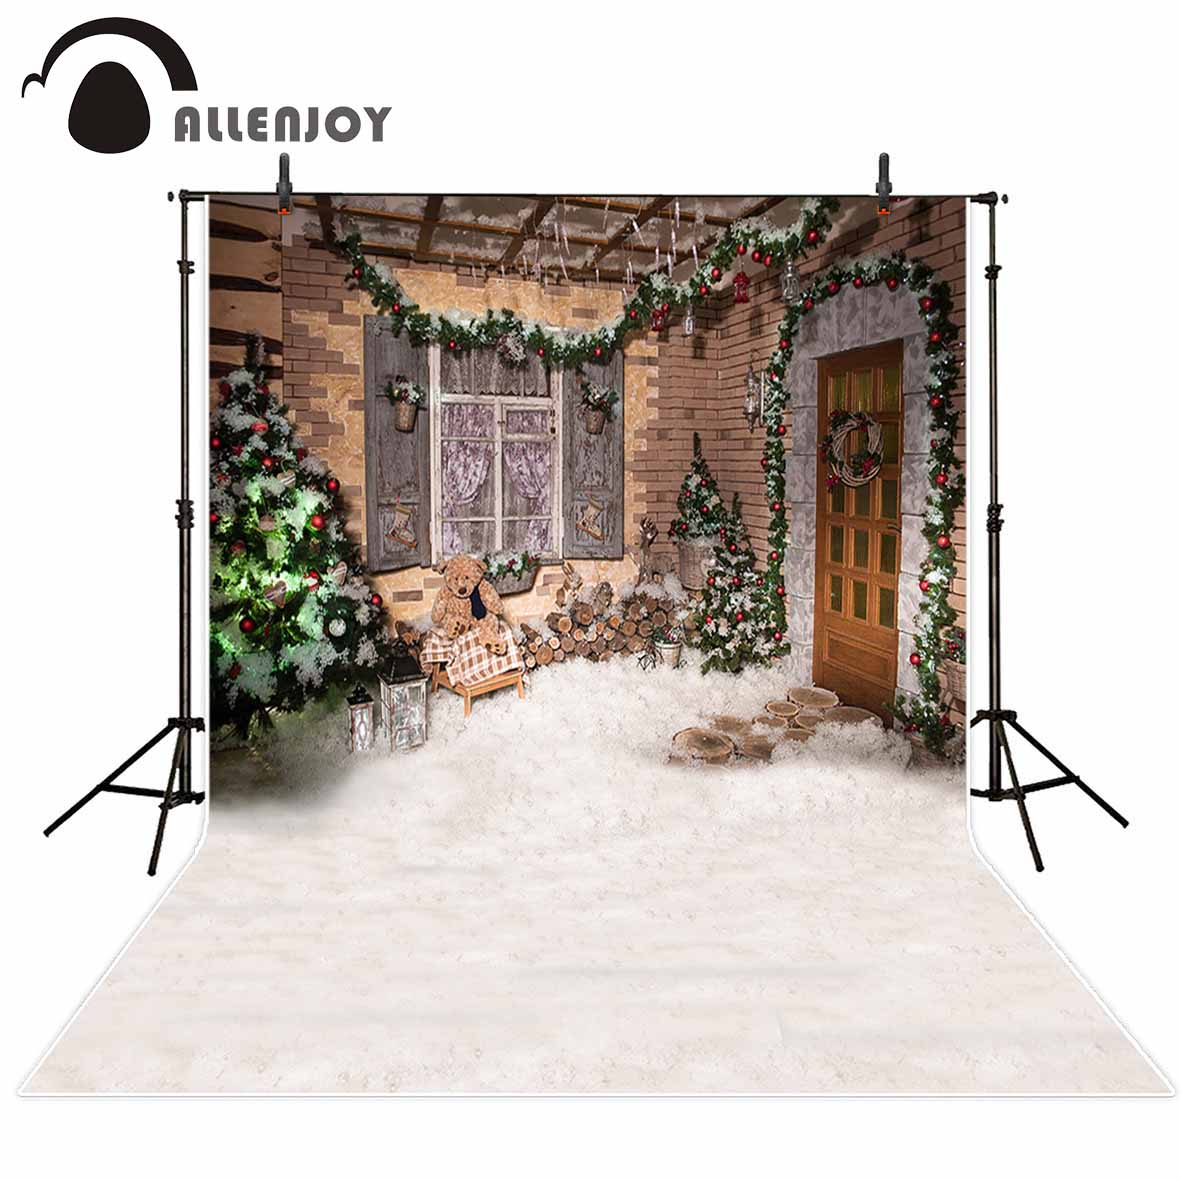 Allenjoy photography backdrop Snow winter house Christmas tree party children new background photocall customize photo printed allenjoy photography backdrop snow winter house christmas tree party children new background photocall customize photo printed